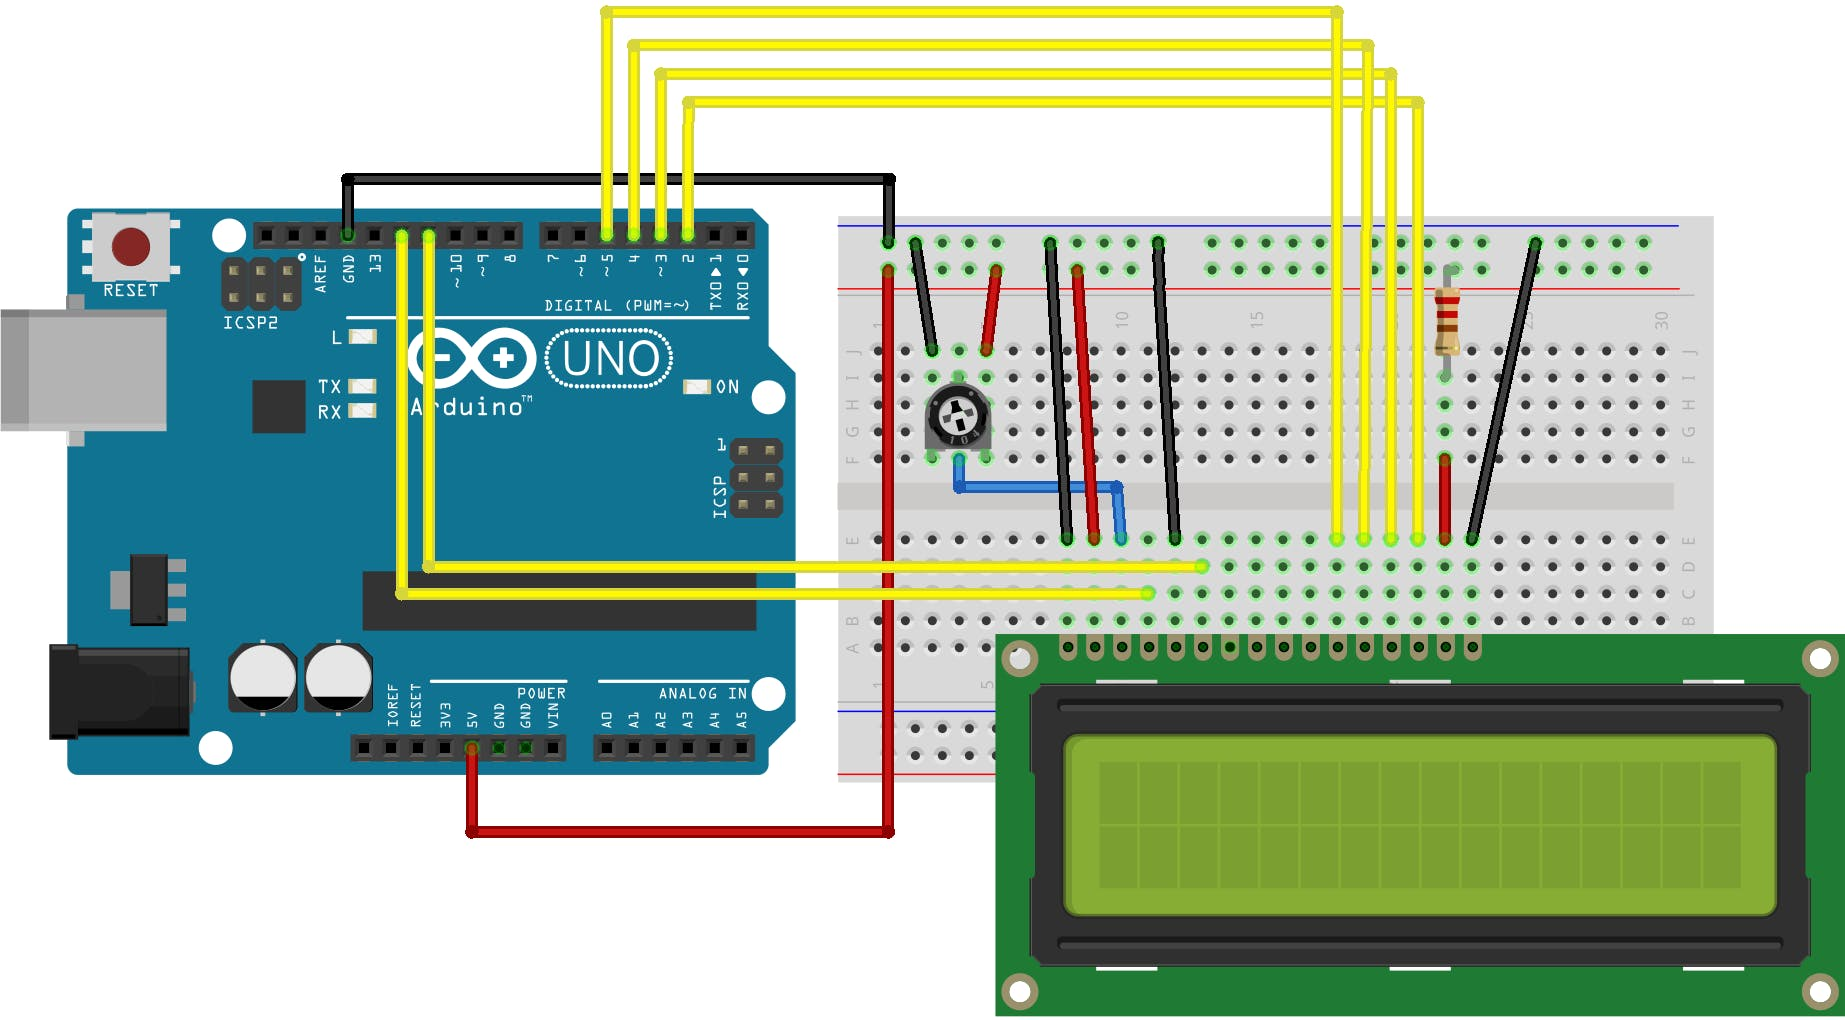 image developed using Fritzing. For more circuit examples, see the Fritzing project page